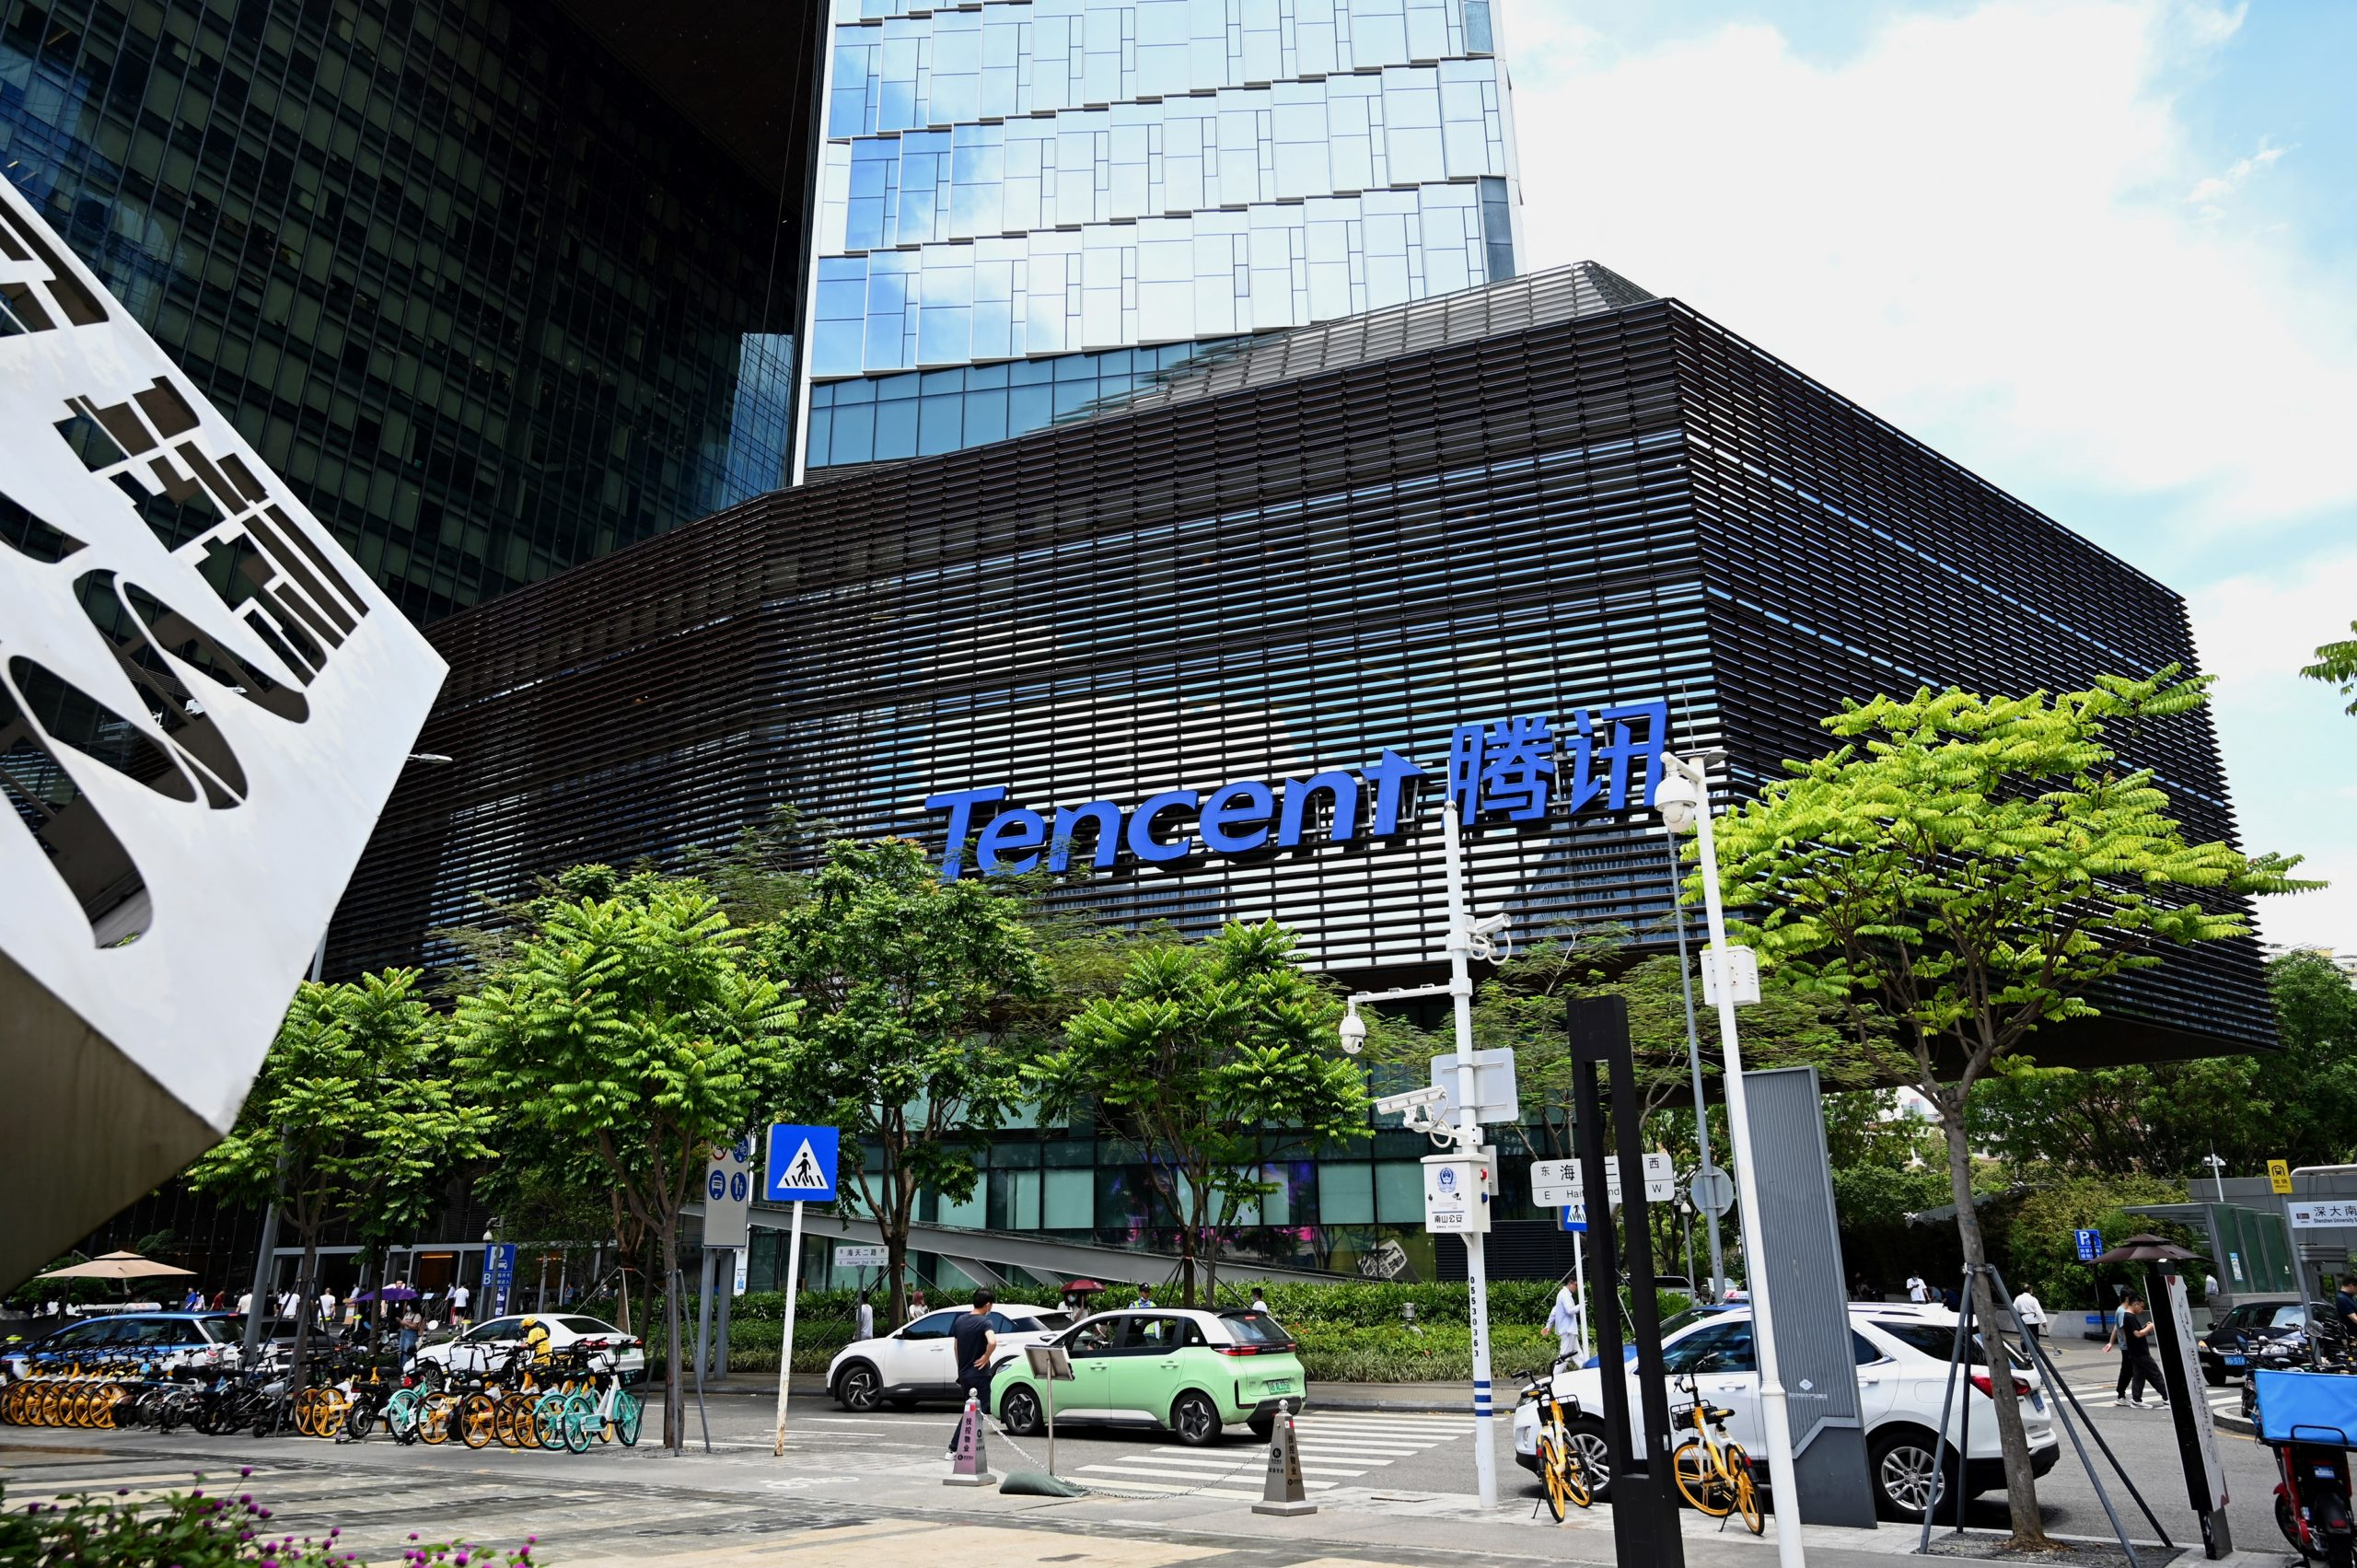 This photo taken on May 26, 2021 shows the Tencent headquarters in the southern Chinese city of Shenzhen, in Guangdong province. (Photo by NOEL CELIS/AFP via Getty Images)